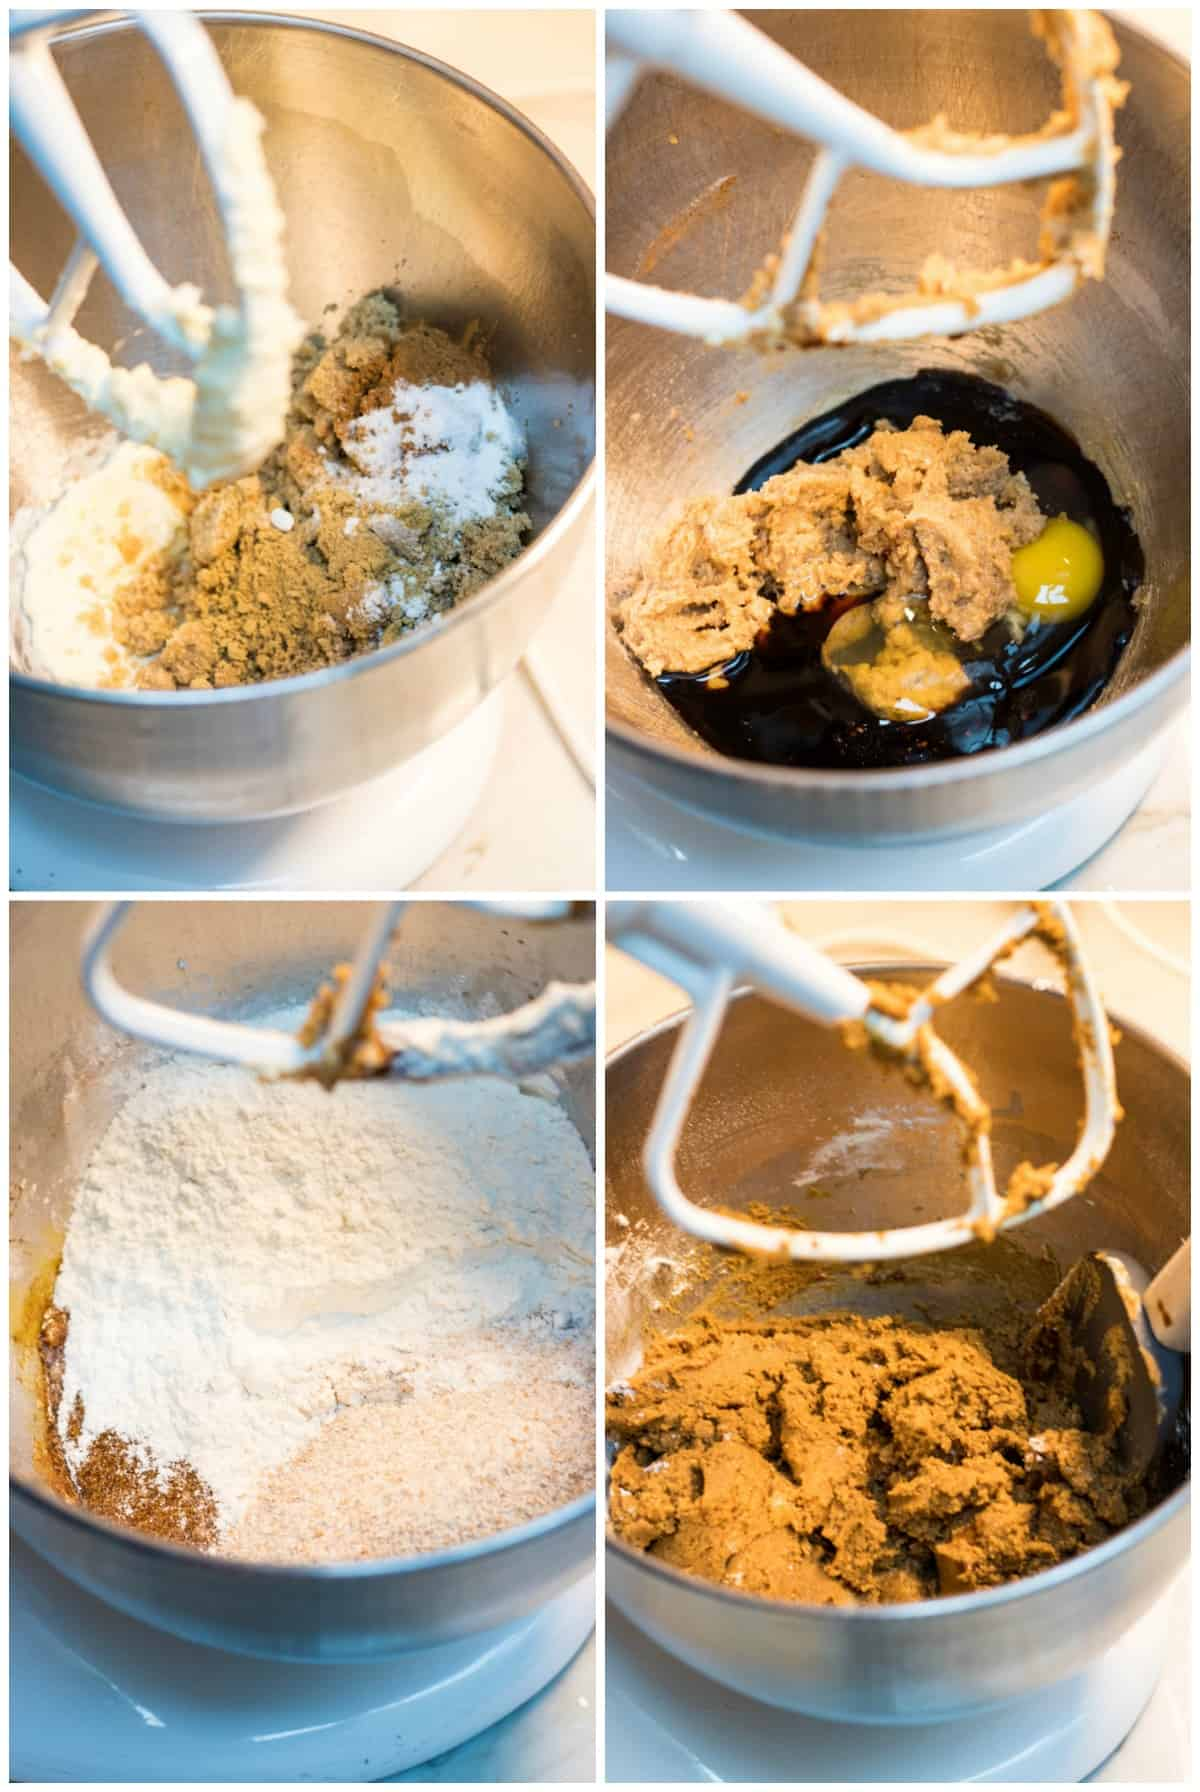 Collage image of ingredients by step in bowl for soft and chewy ginger molasses cookies.